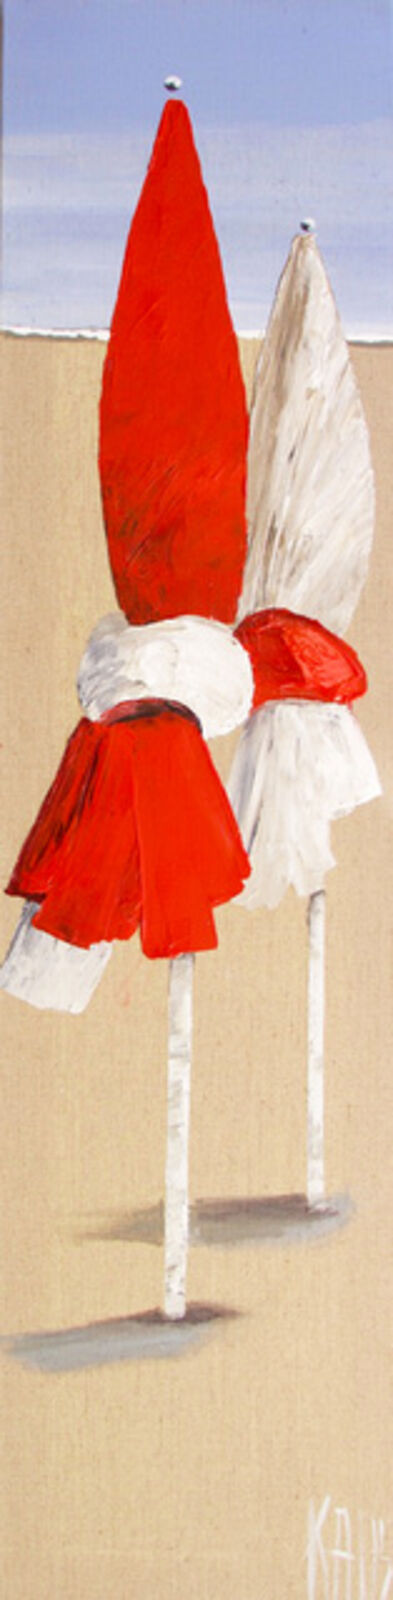 Michele Kaus, 'The two parasols, Deauville', 2020